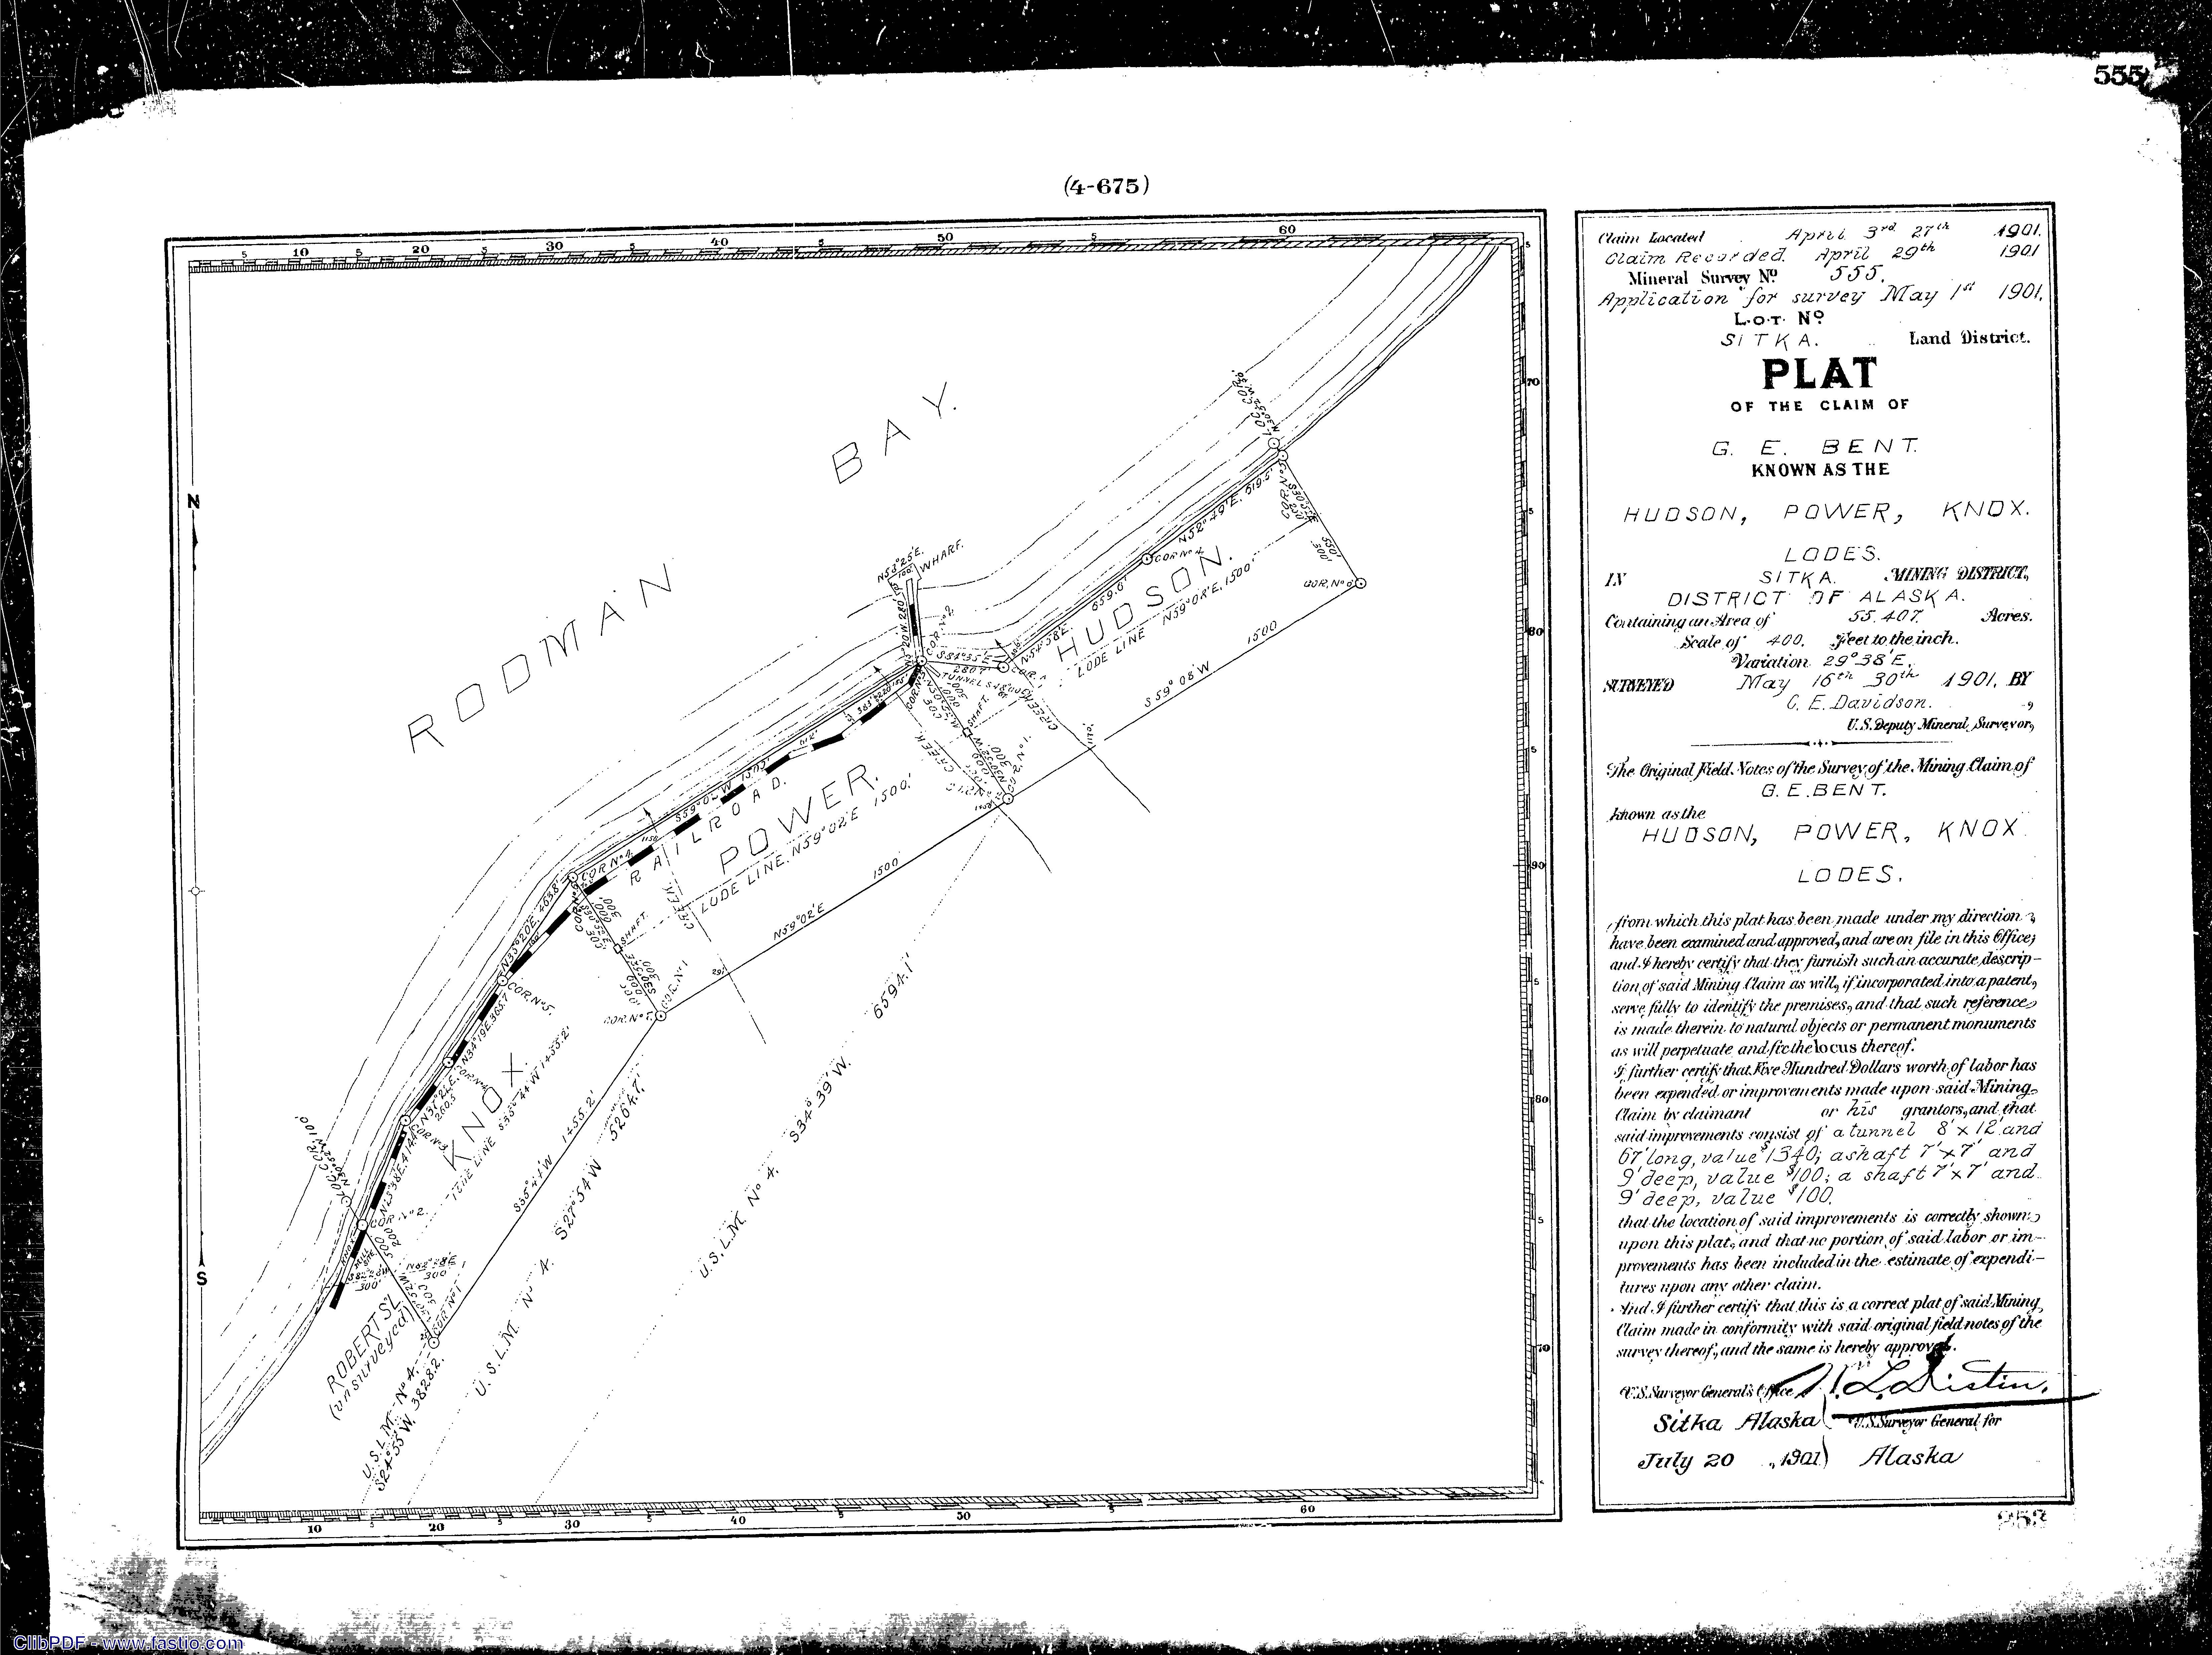 rodman2?w=450&h=336 lesser known and obscure railroads of alaska saveitforparts  at bakdesigns.co